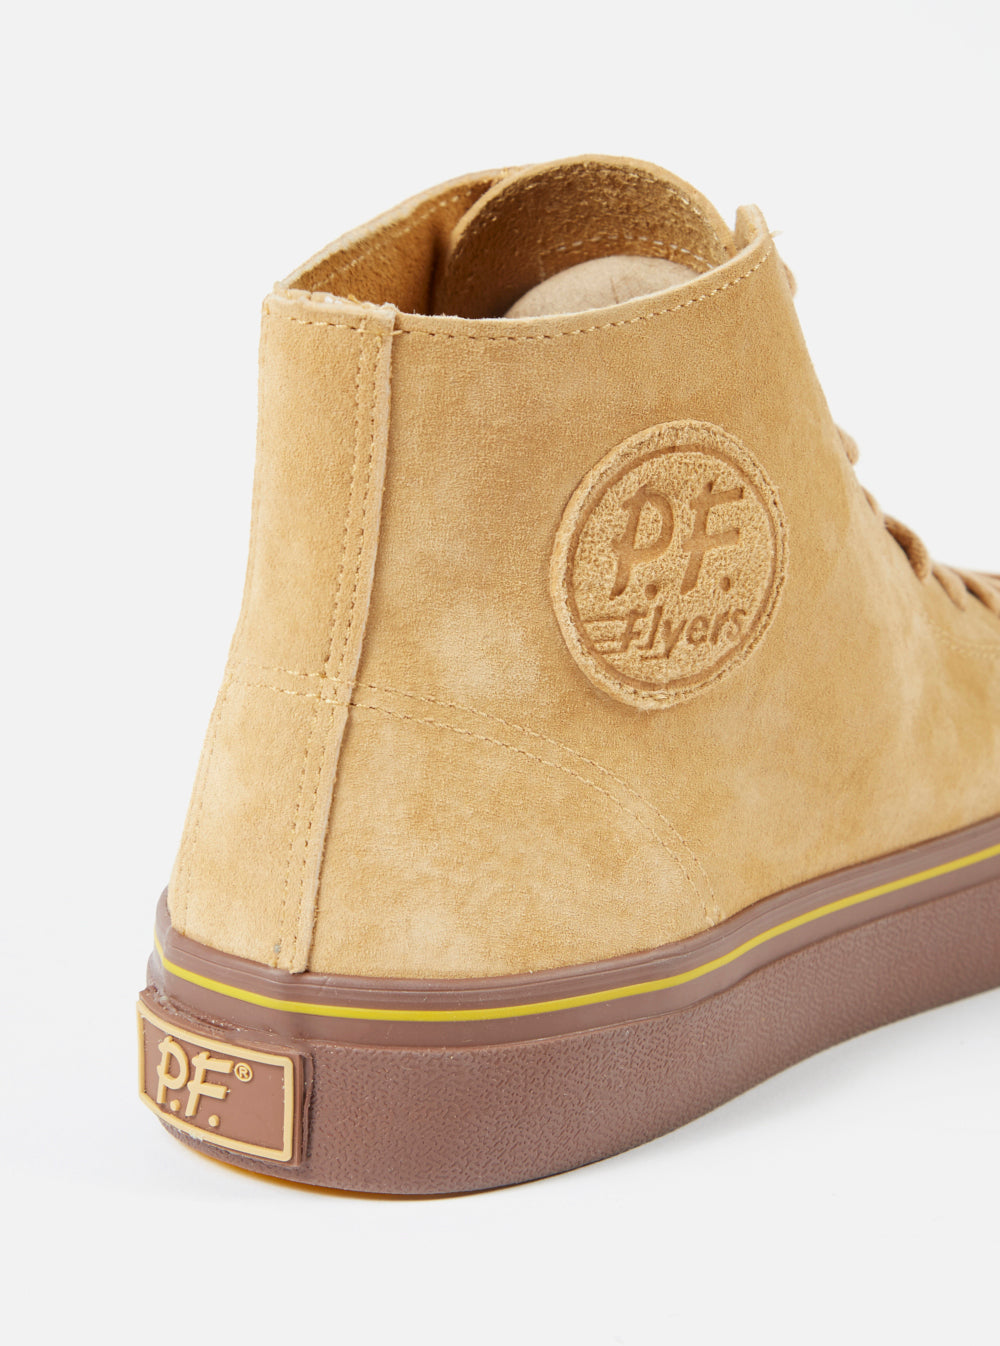 Universal Works x P.F. Flyers Center Hi in Sand Suede